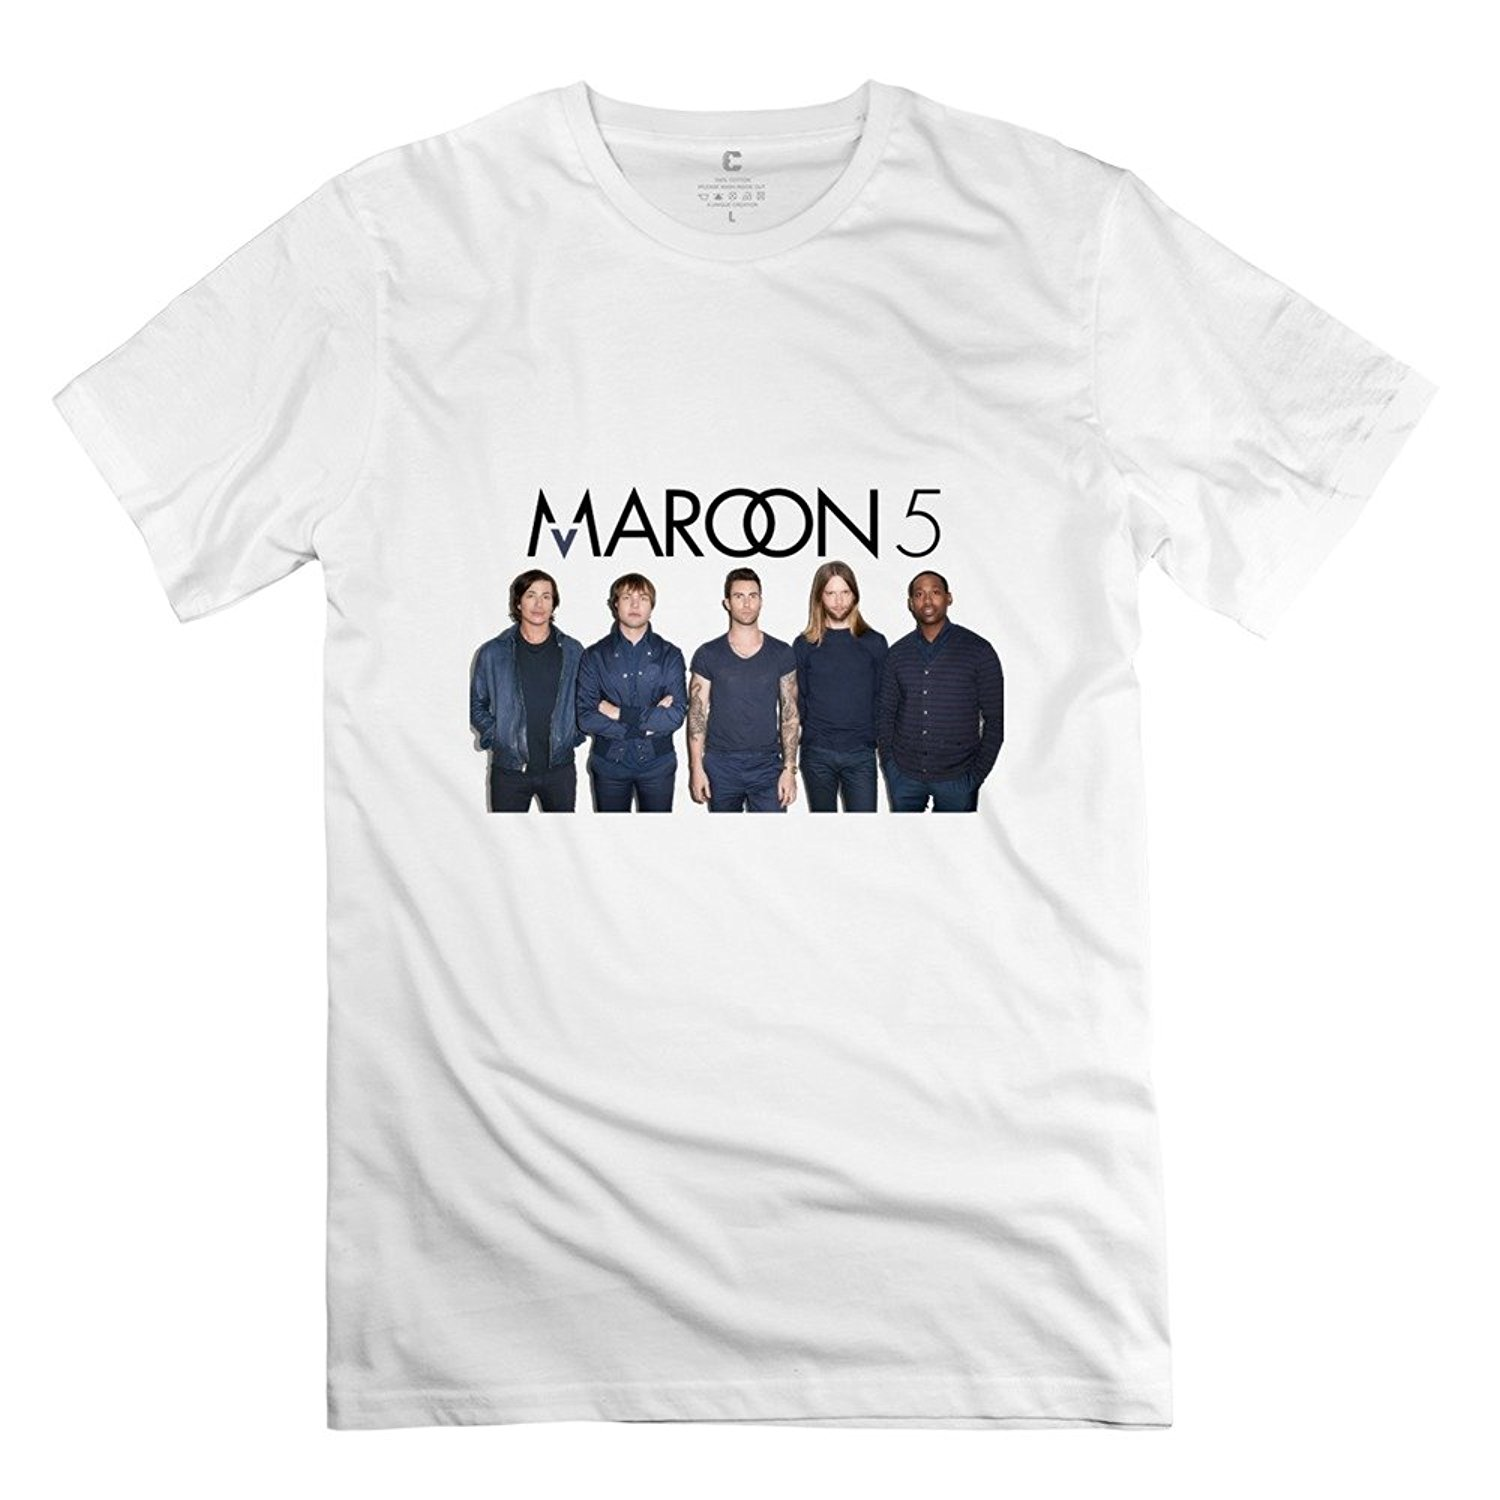 Mens Maroon 5 T-Shirt- White